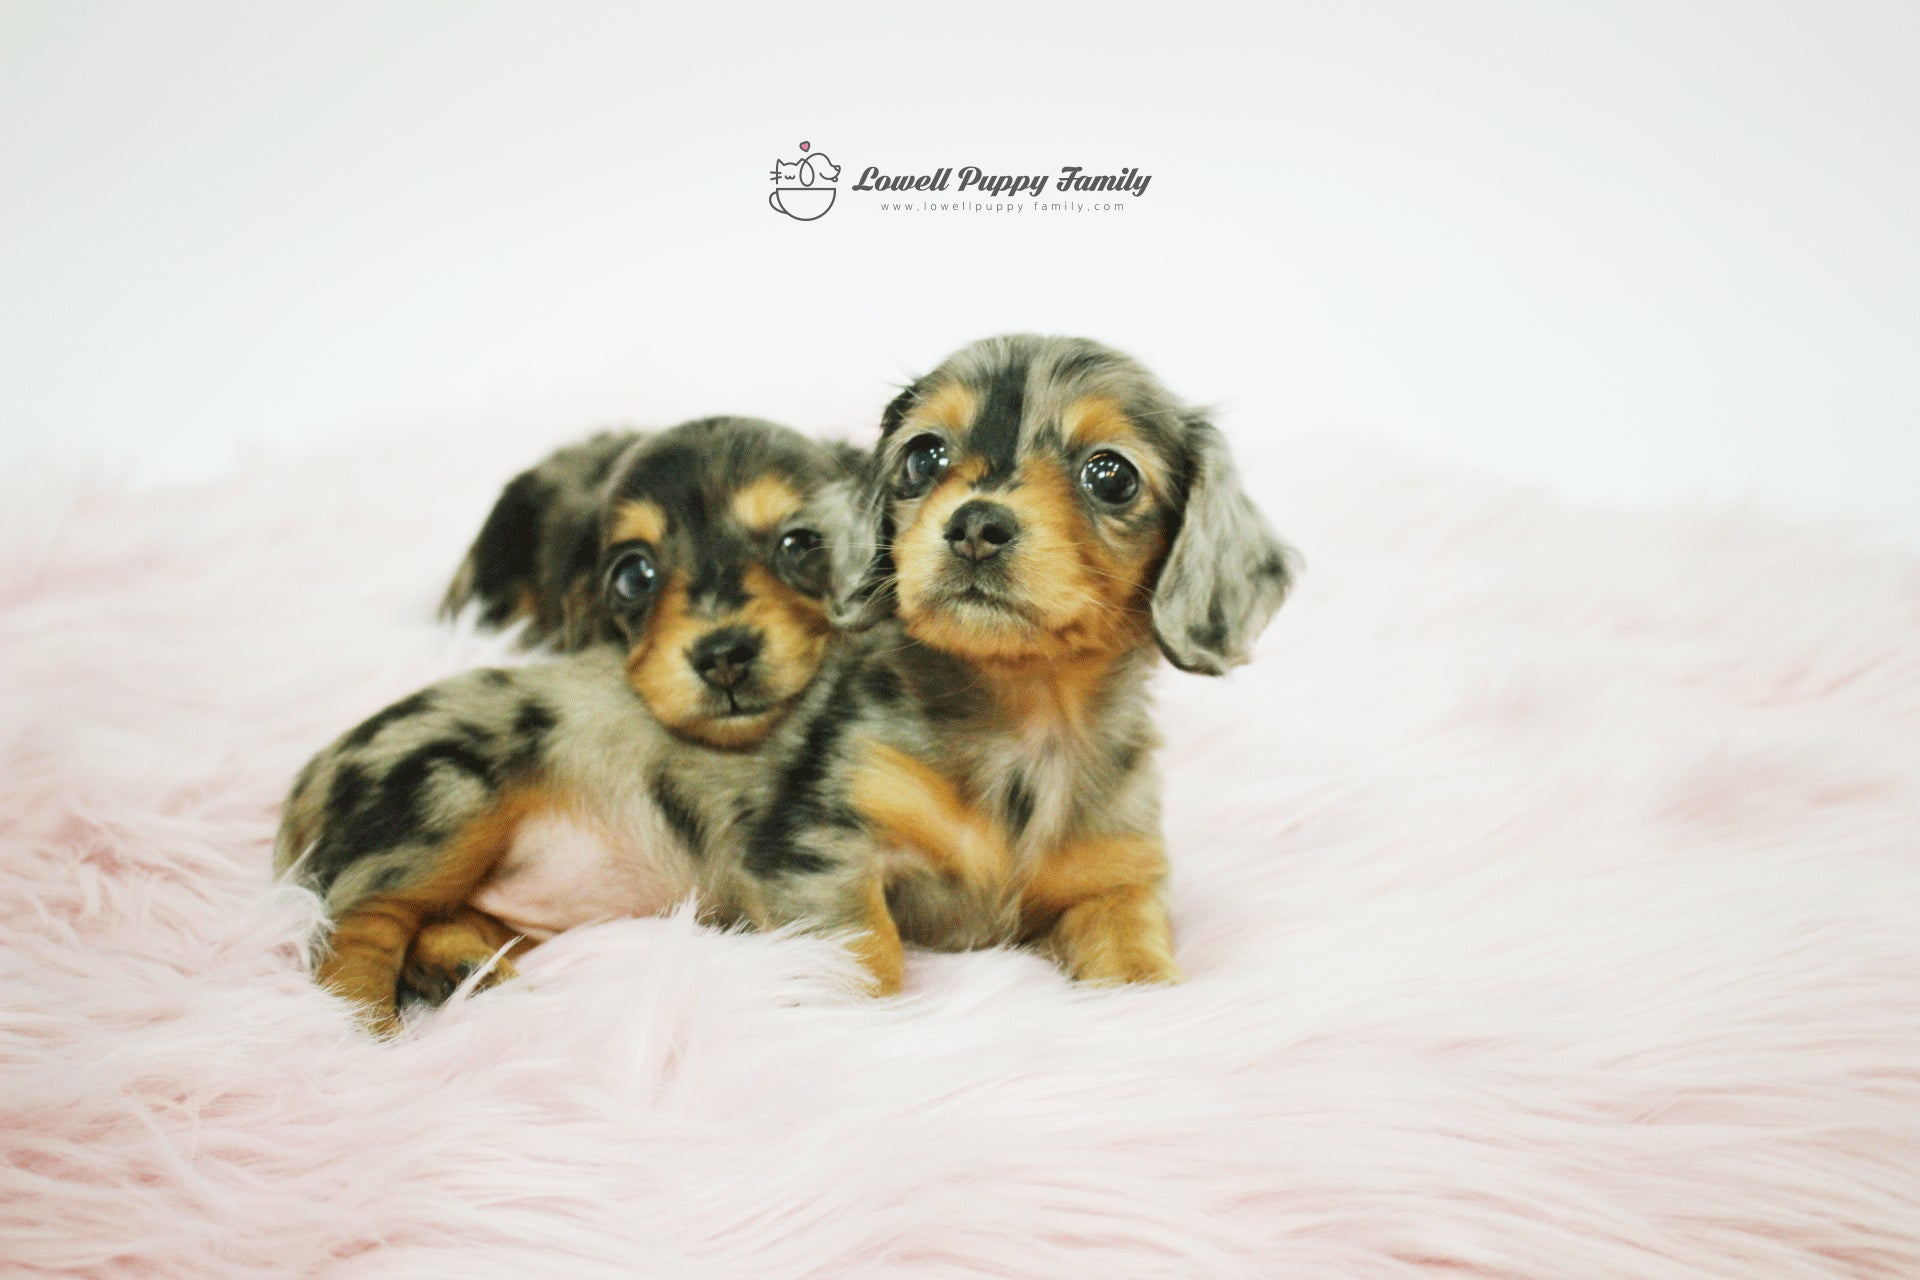 Tania pourat female Aida sold out / Mini Dachshund Twins [Alan,Aida sold out]